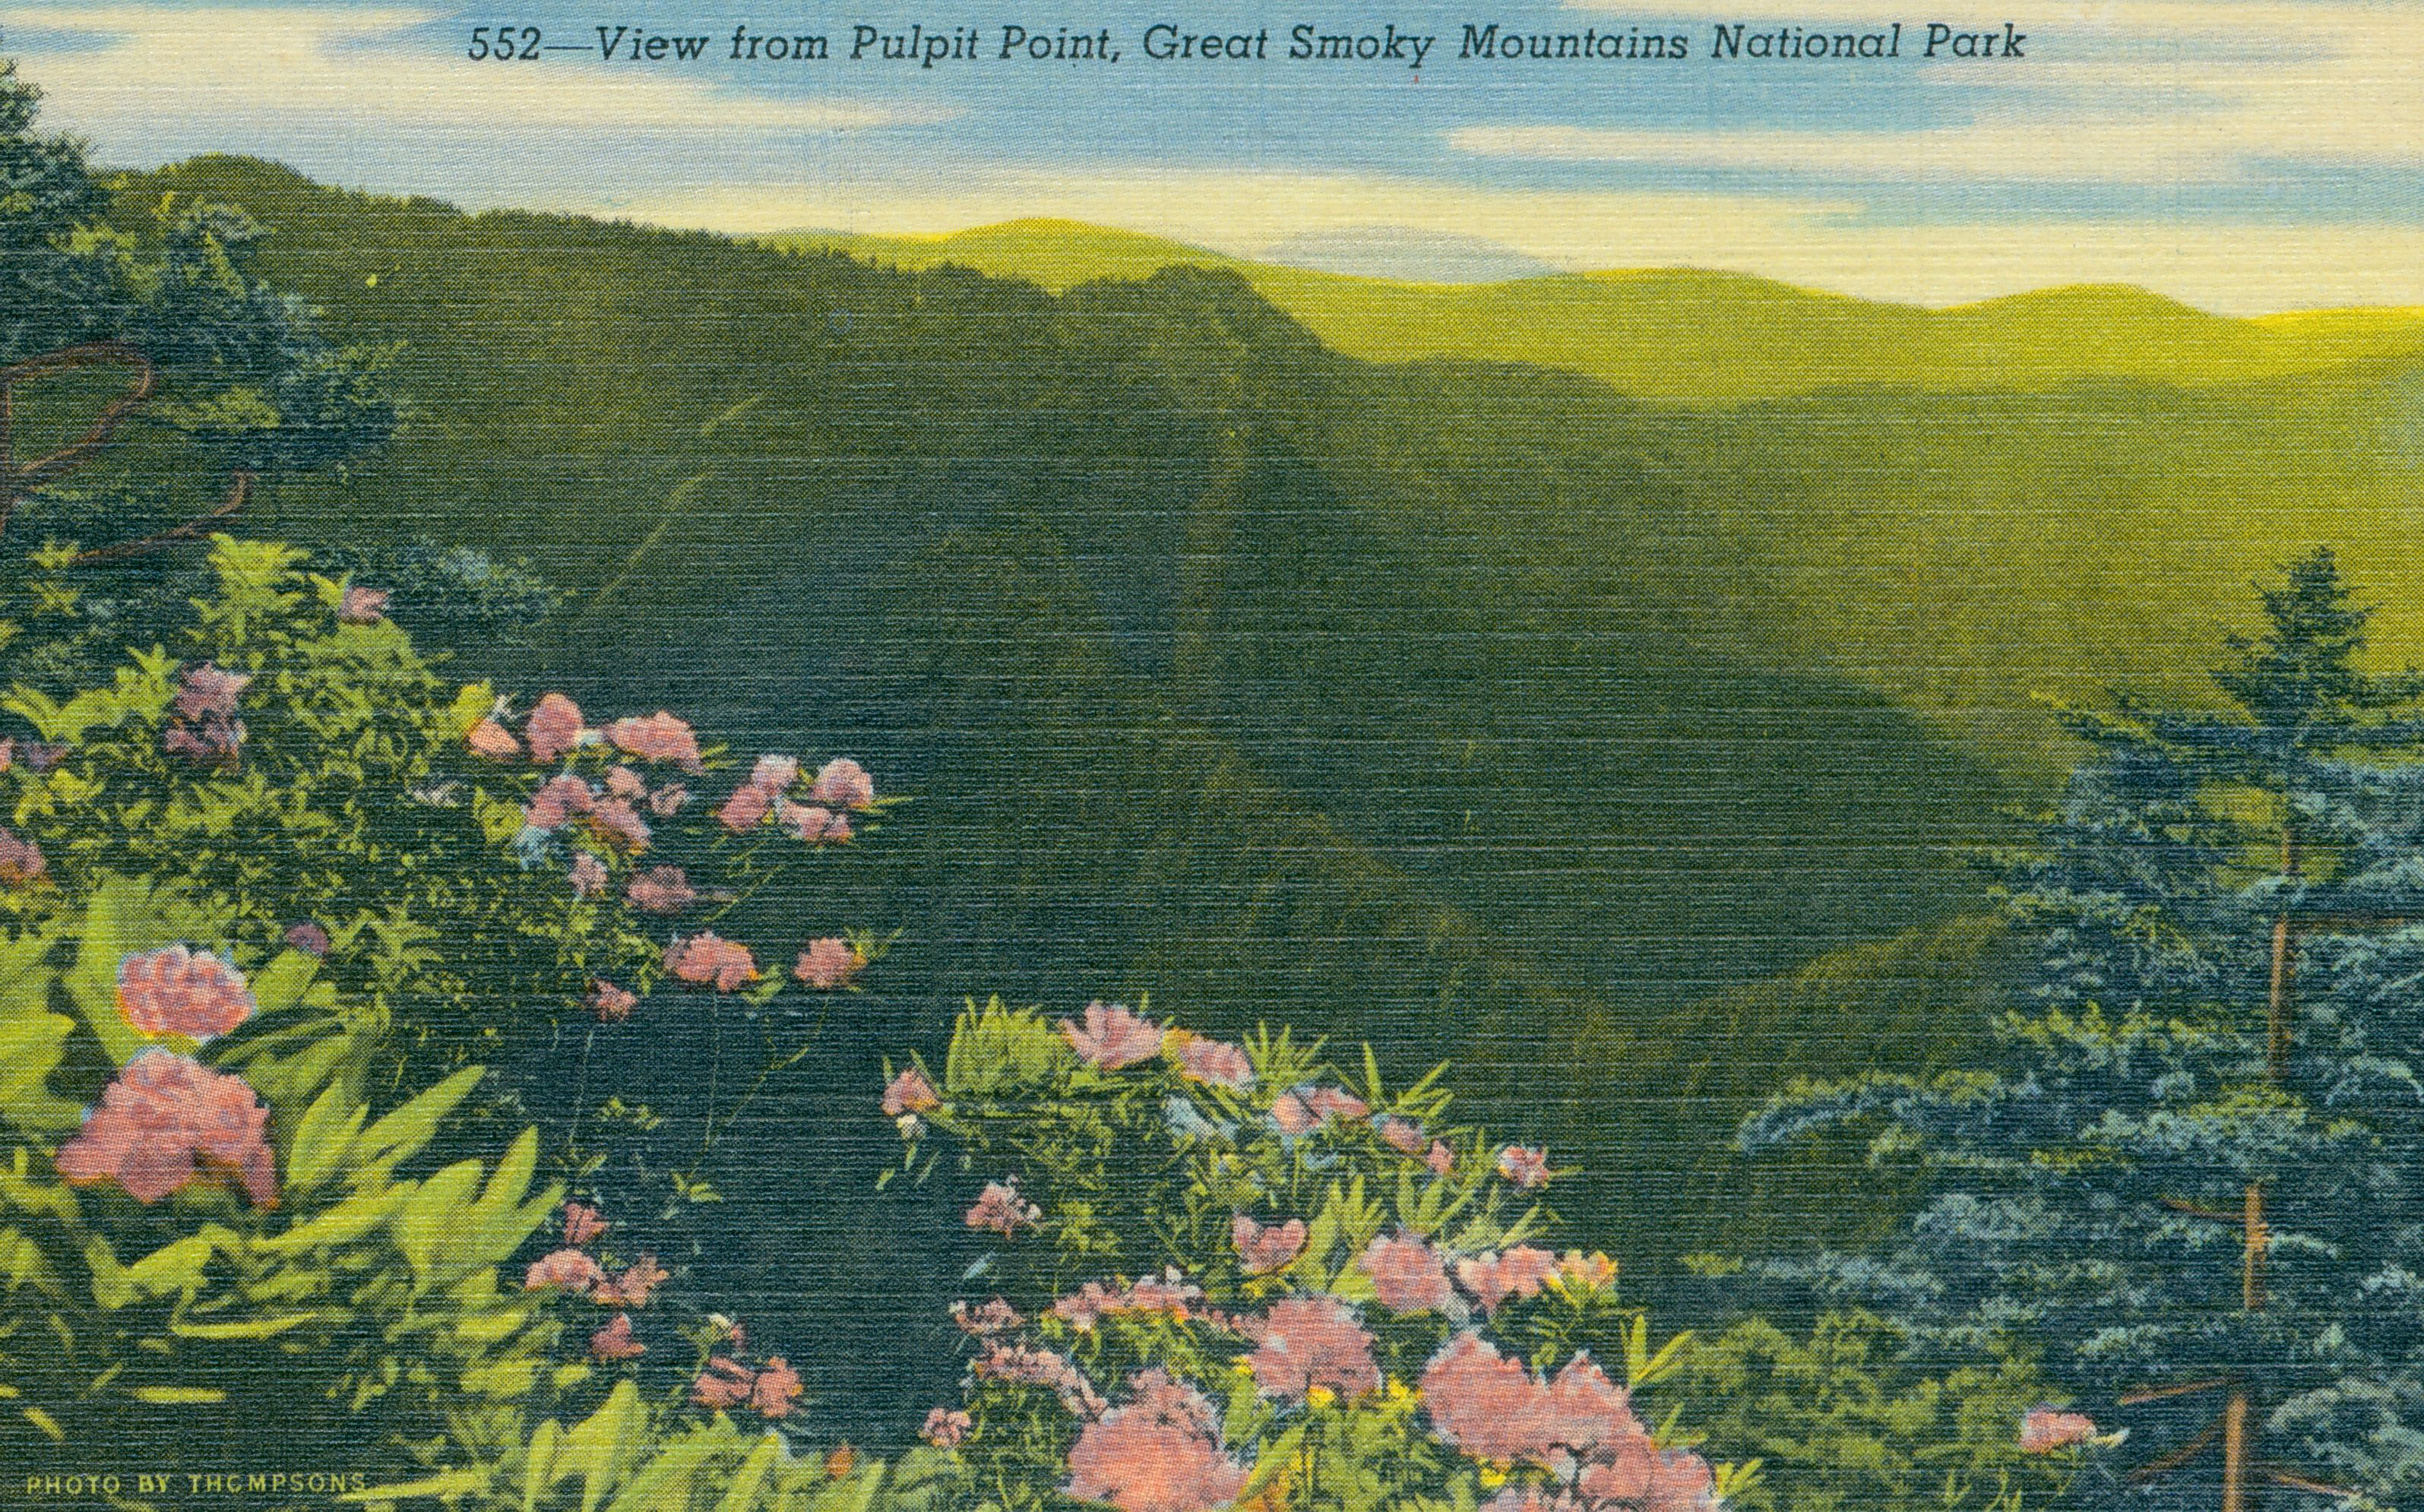 View of Pulpit Point, Great Smoky Mountains National Park